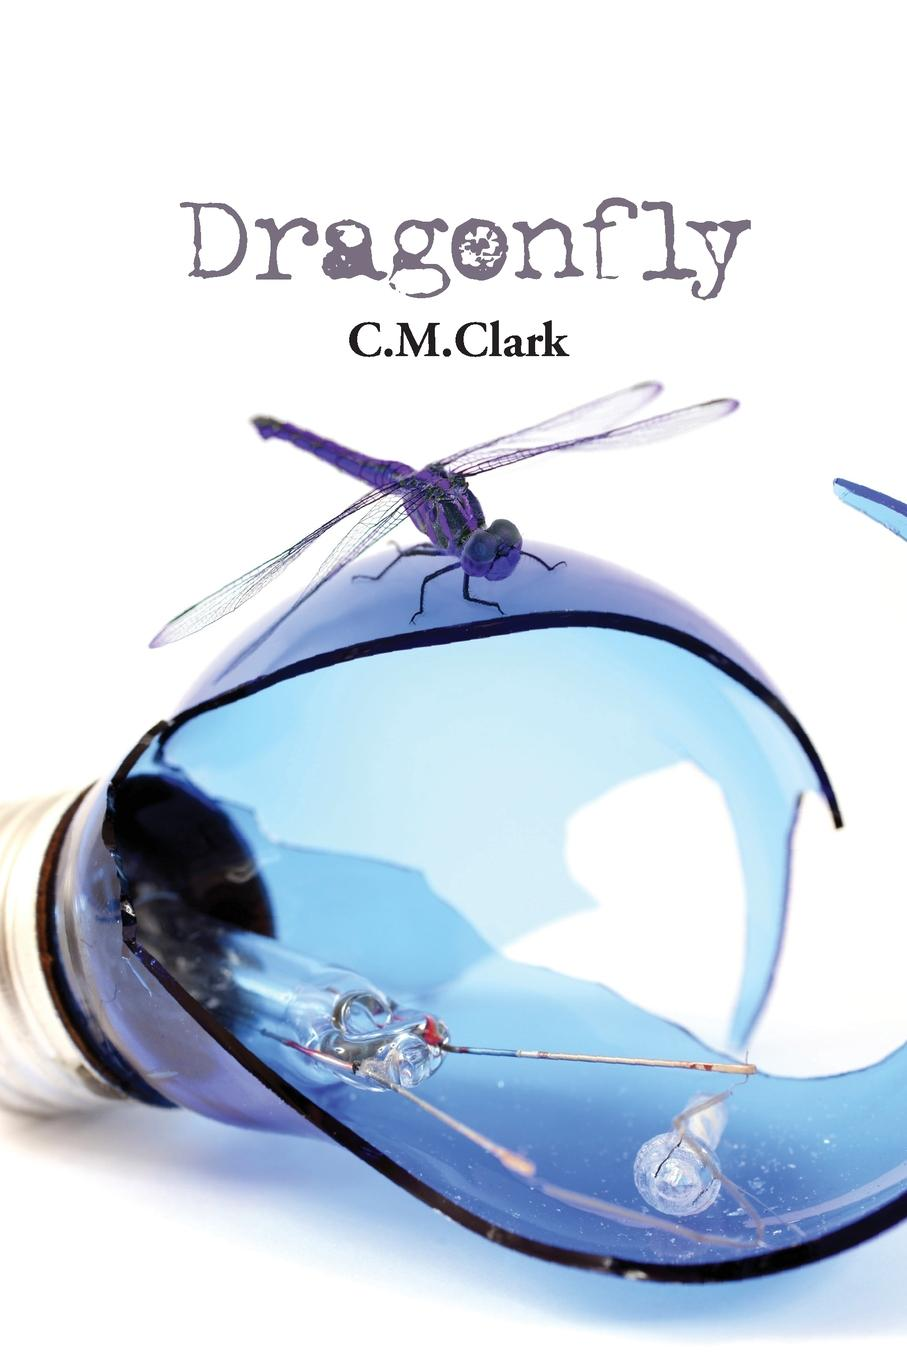 Dragonfly An adventurous poet is C.M. Clark who, with the advent of her third...